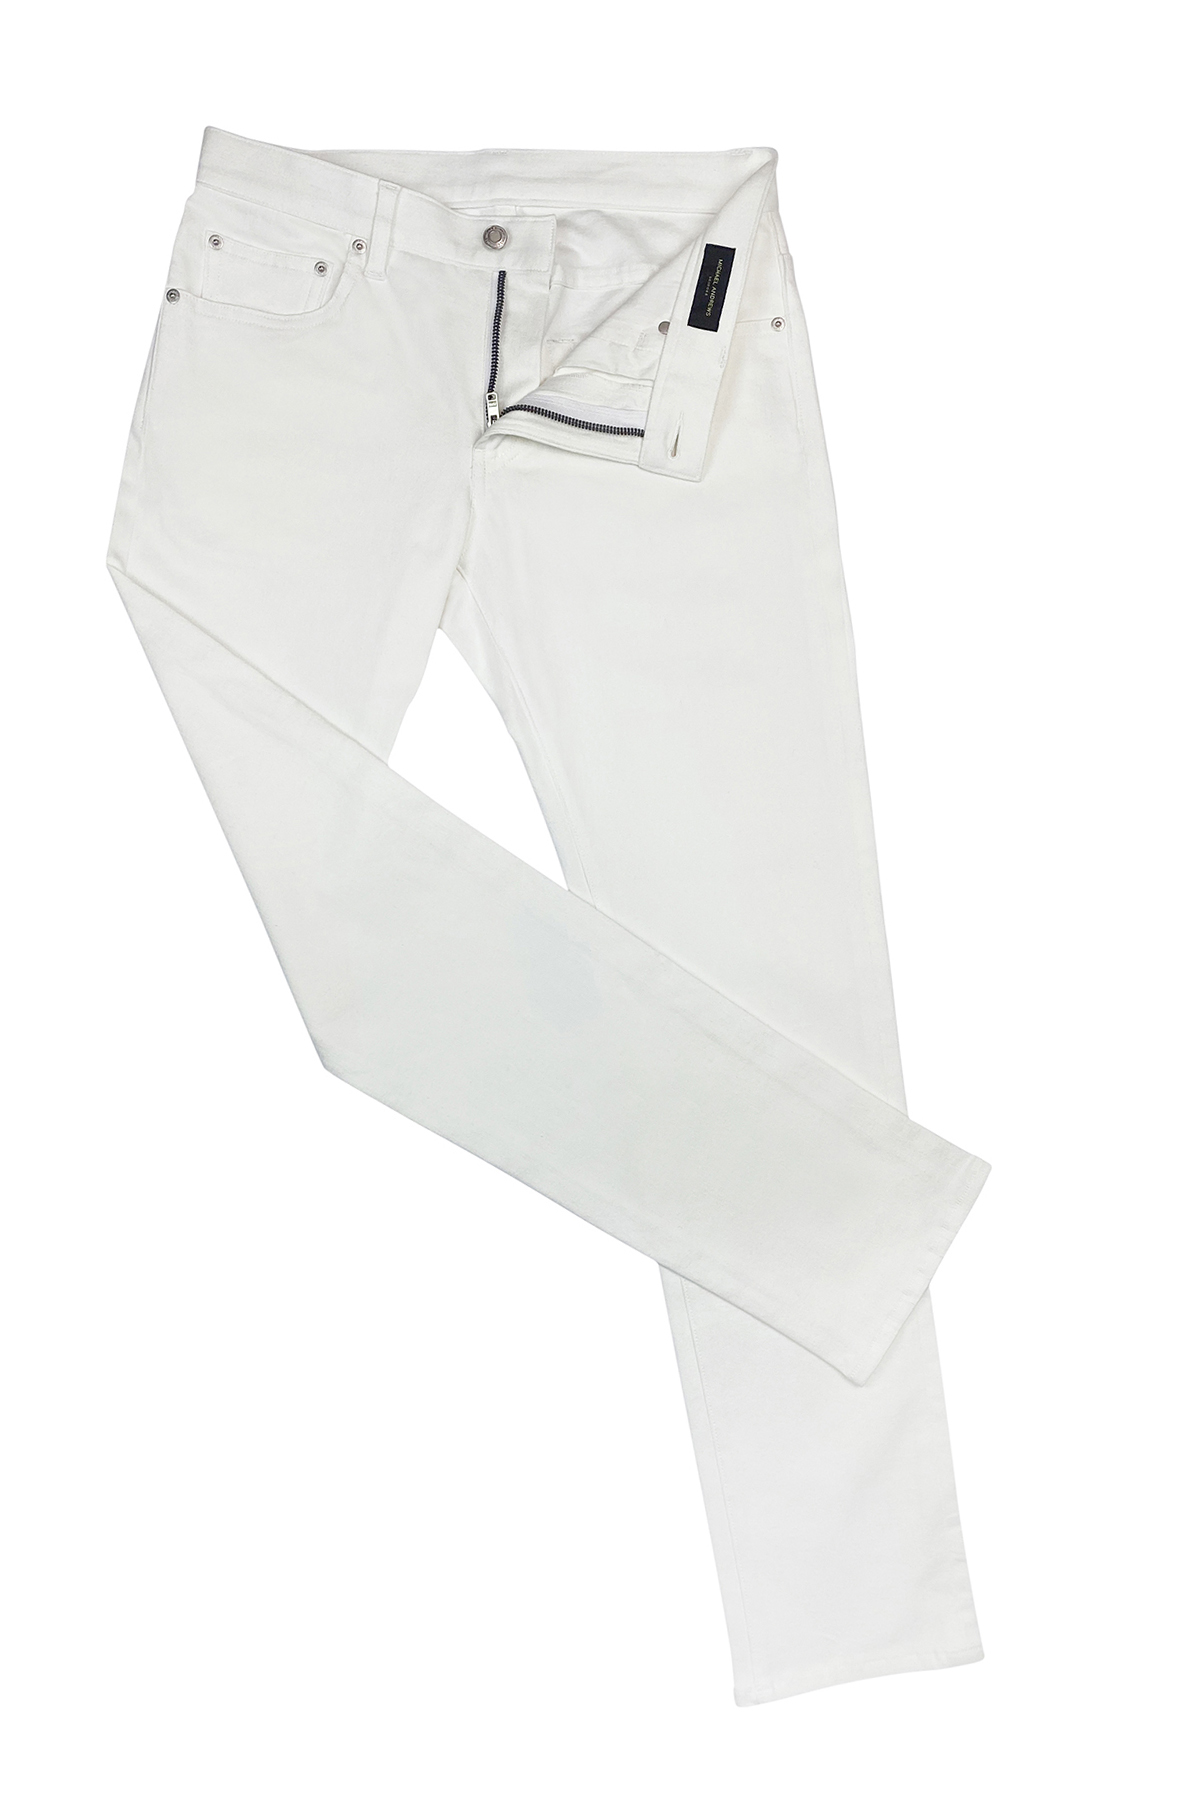 White Stretch Denim Jeans